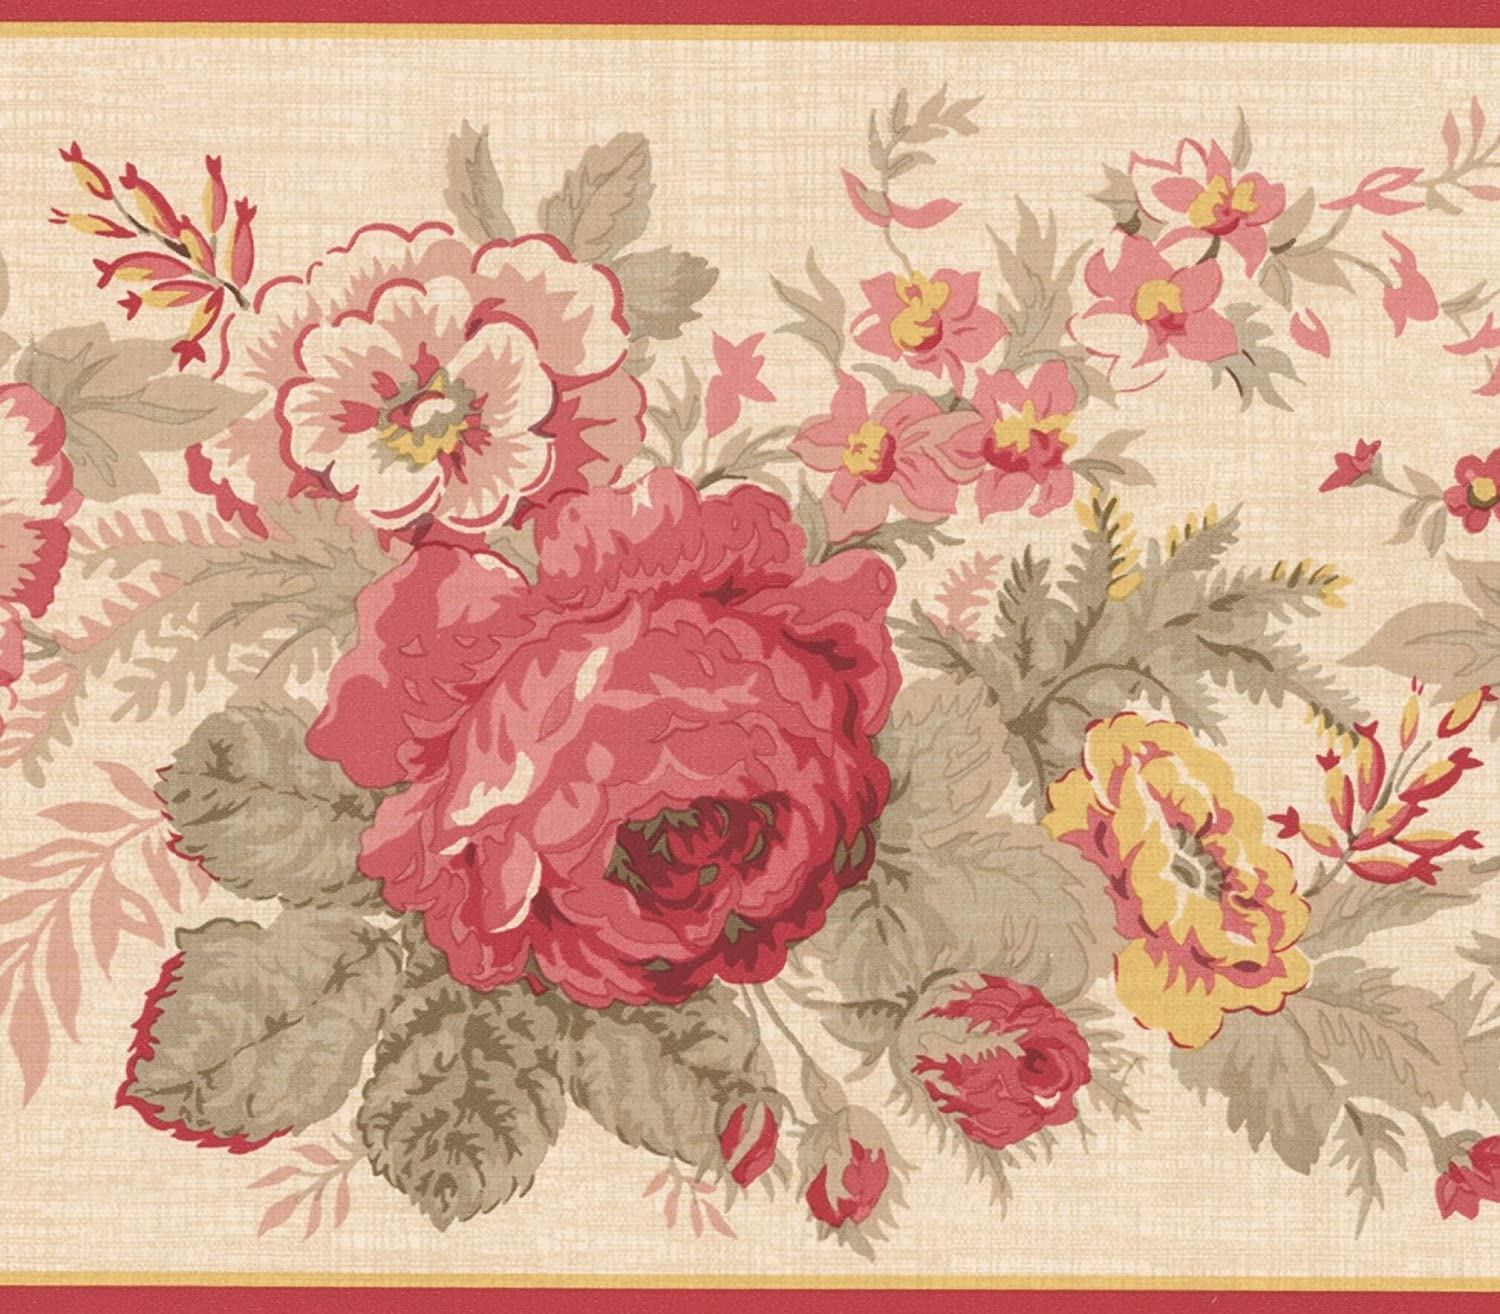 Red Yellow Blooming Flowers Floral Wallpaper Border Retro Design